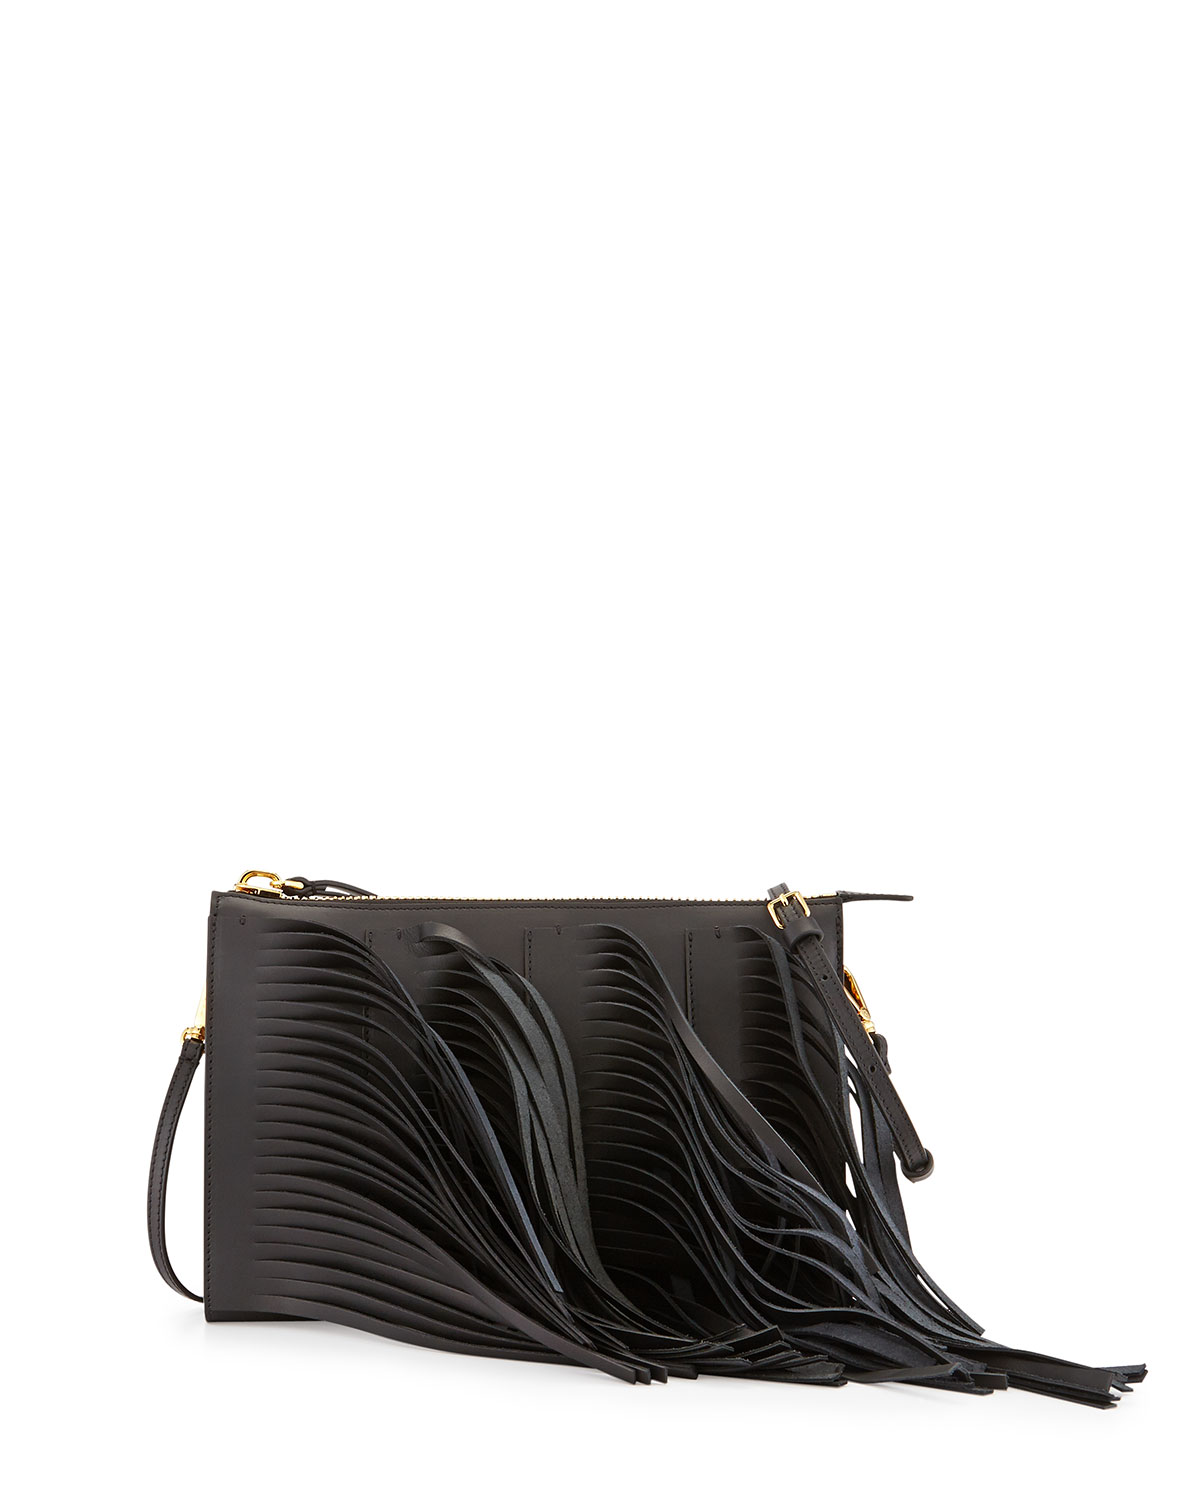 Marni Fringe Leather Zip Crossbody Bag, Black/Gray